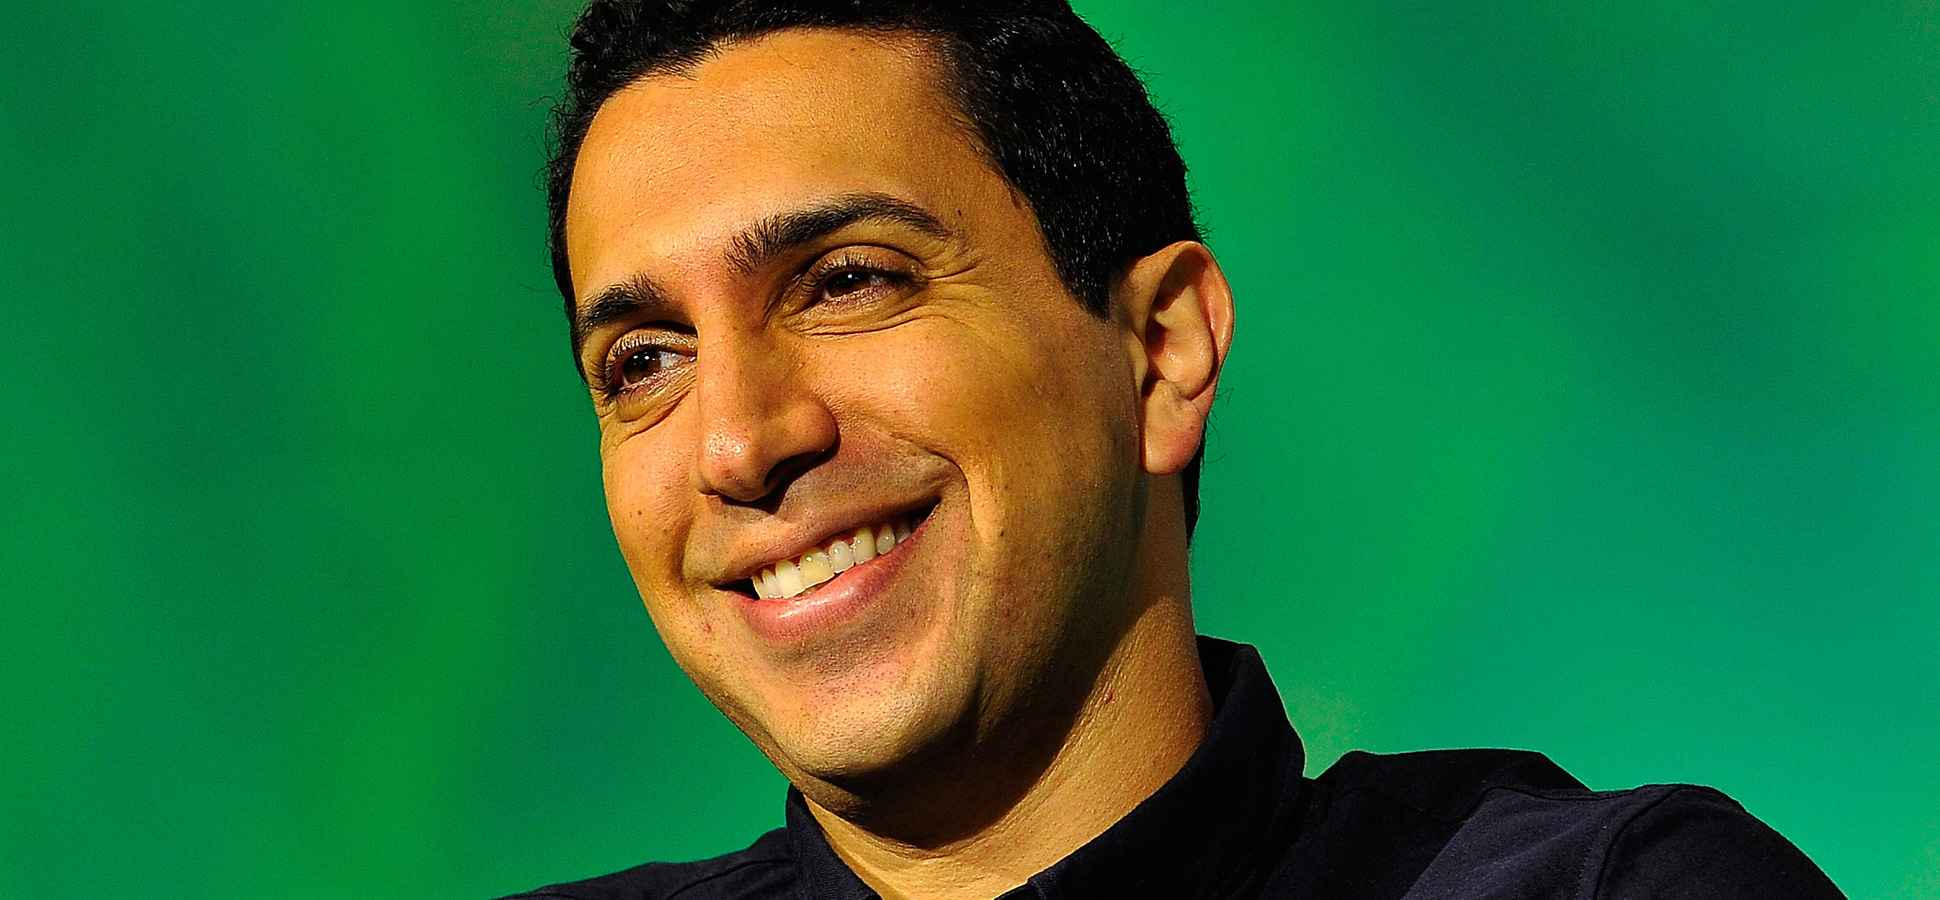 What Tinder's CEO Demotion Means for Silicon Valley's Bro-Gate Culture